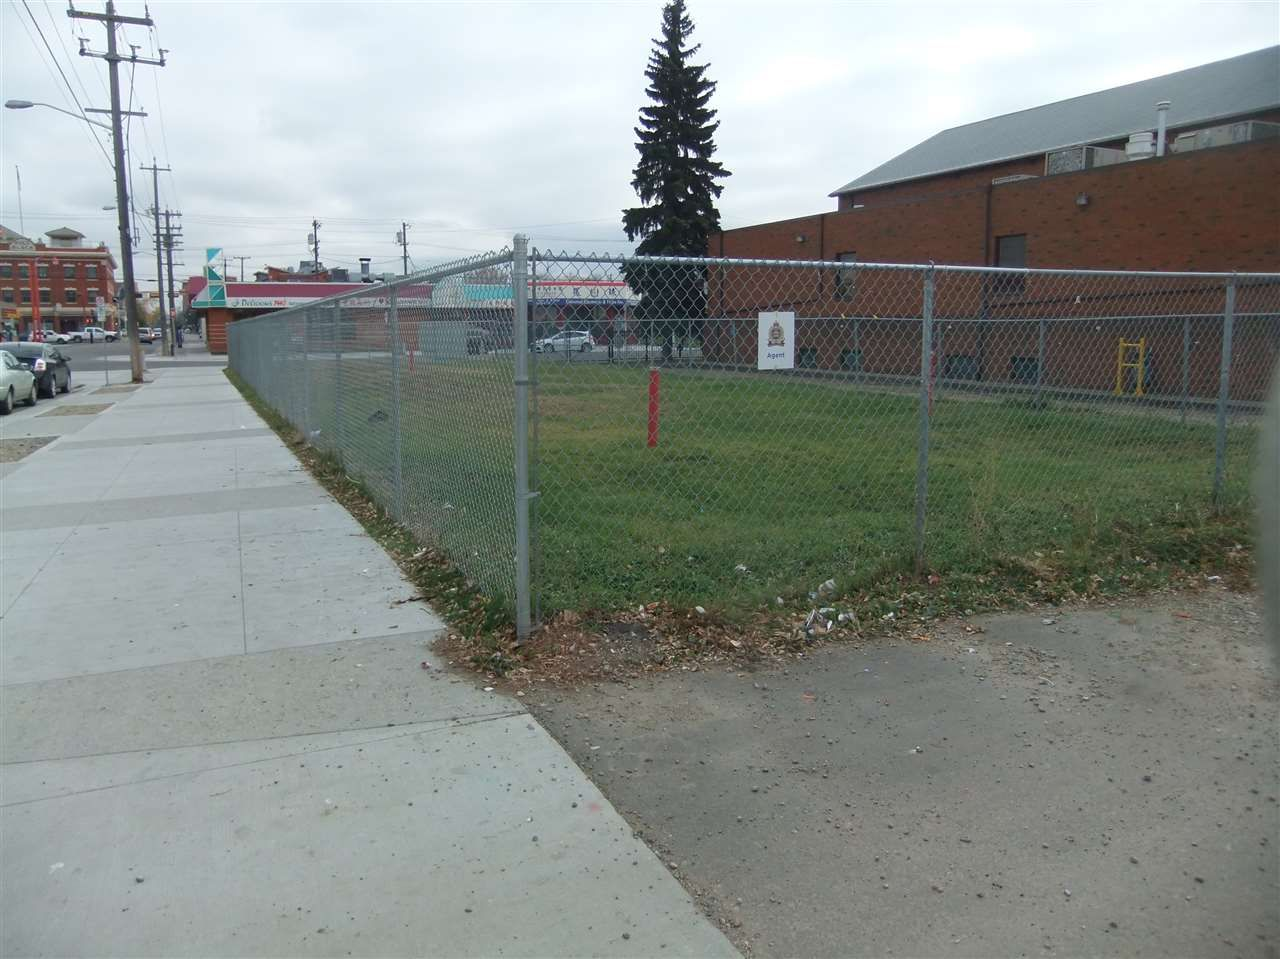 Main Photo: 10564 98 Street in Edmonton: Zone 13 Land Commercial for sale : MLS®# E4248959